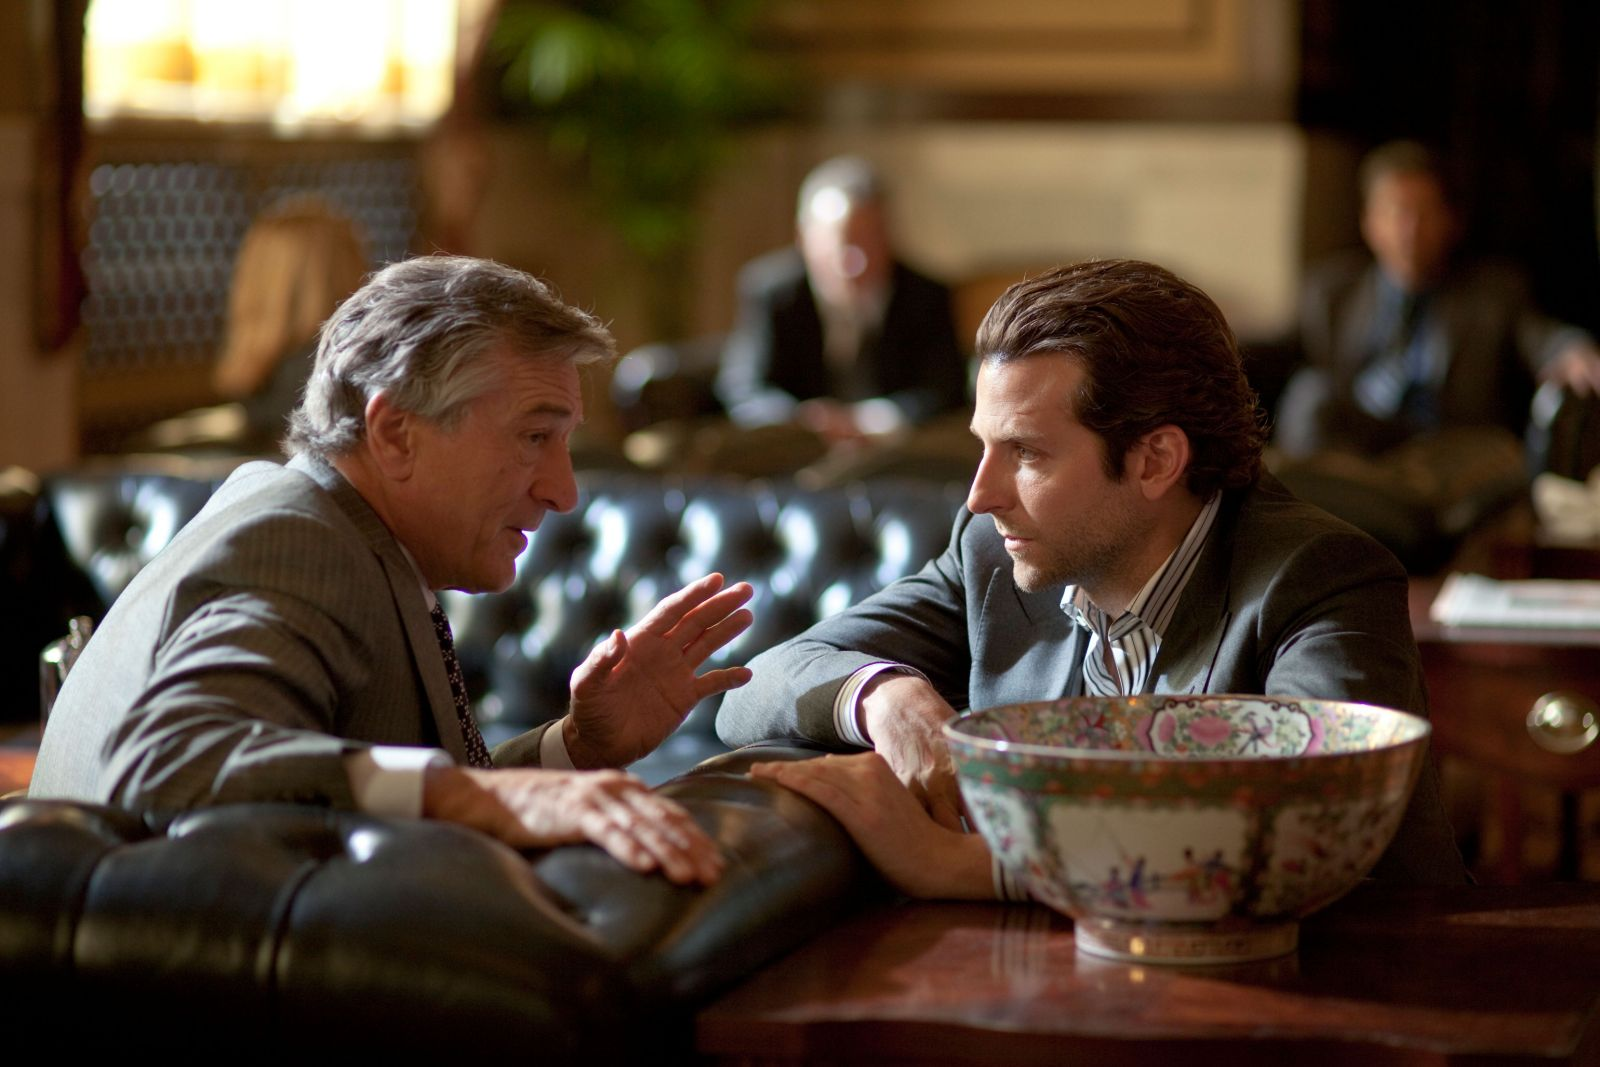 Robert De Niro has a proposition for Bradley Cooper.